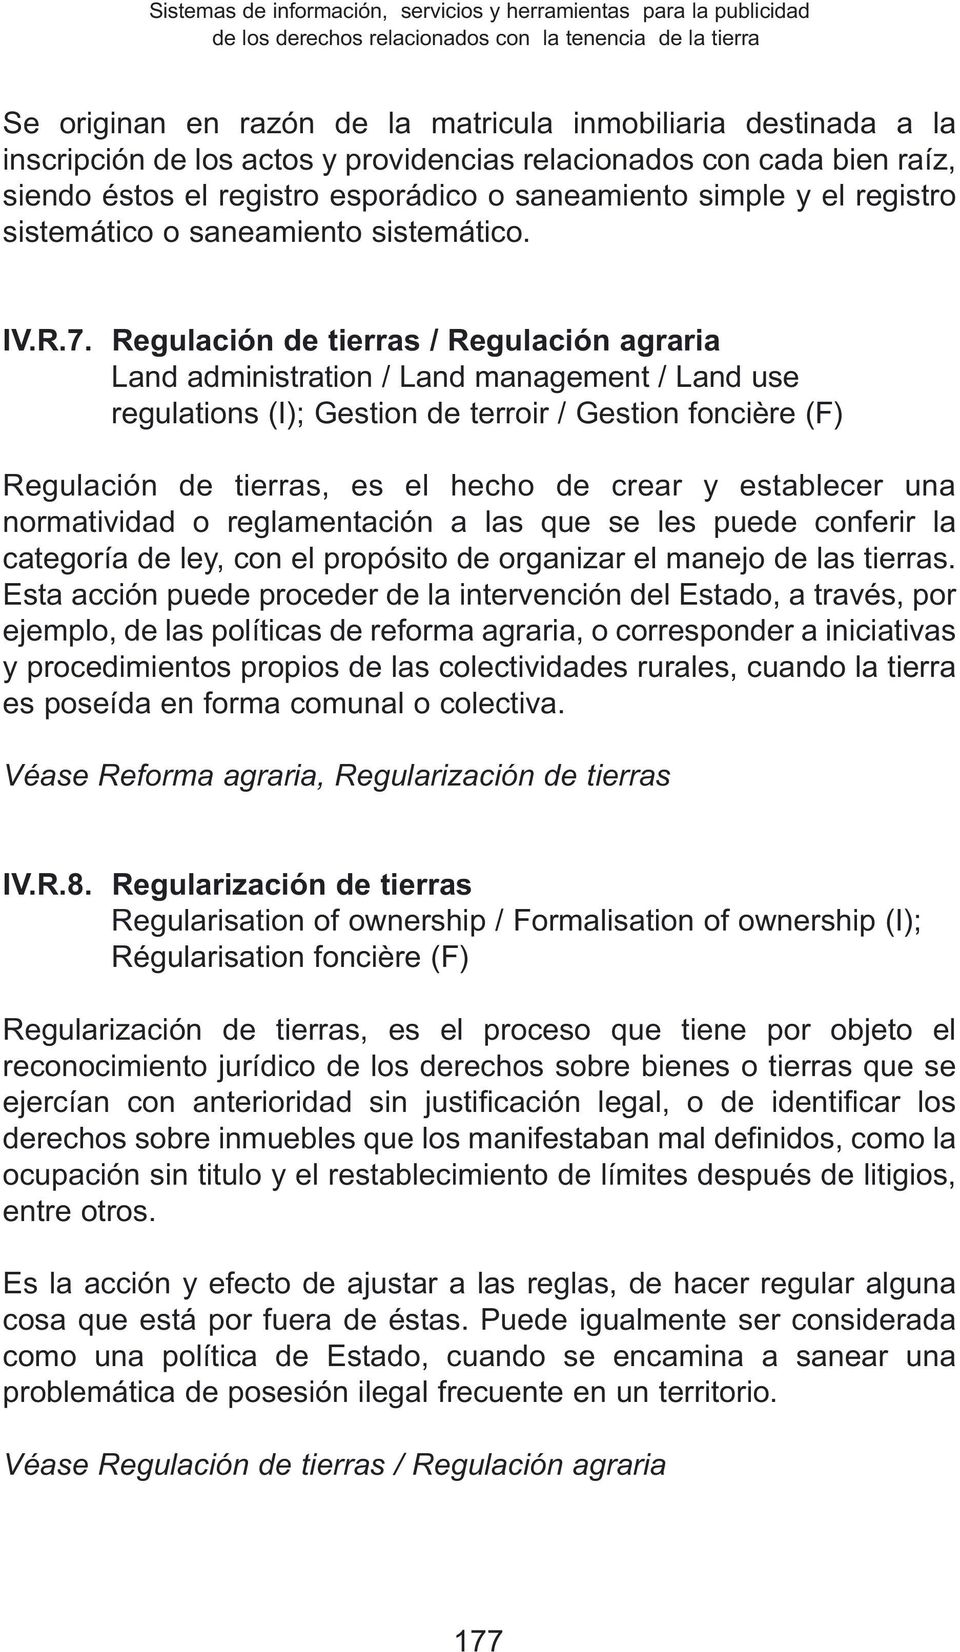 Regulación de tierras / Regulación agraria Land administration / Land management / Land use regulations (I); Gestion de terroir / Gestion foncière (F) Regulación de tierras, es el hecho de crear y